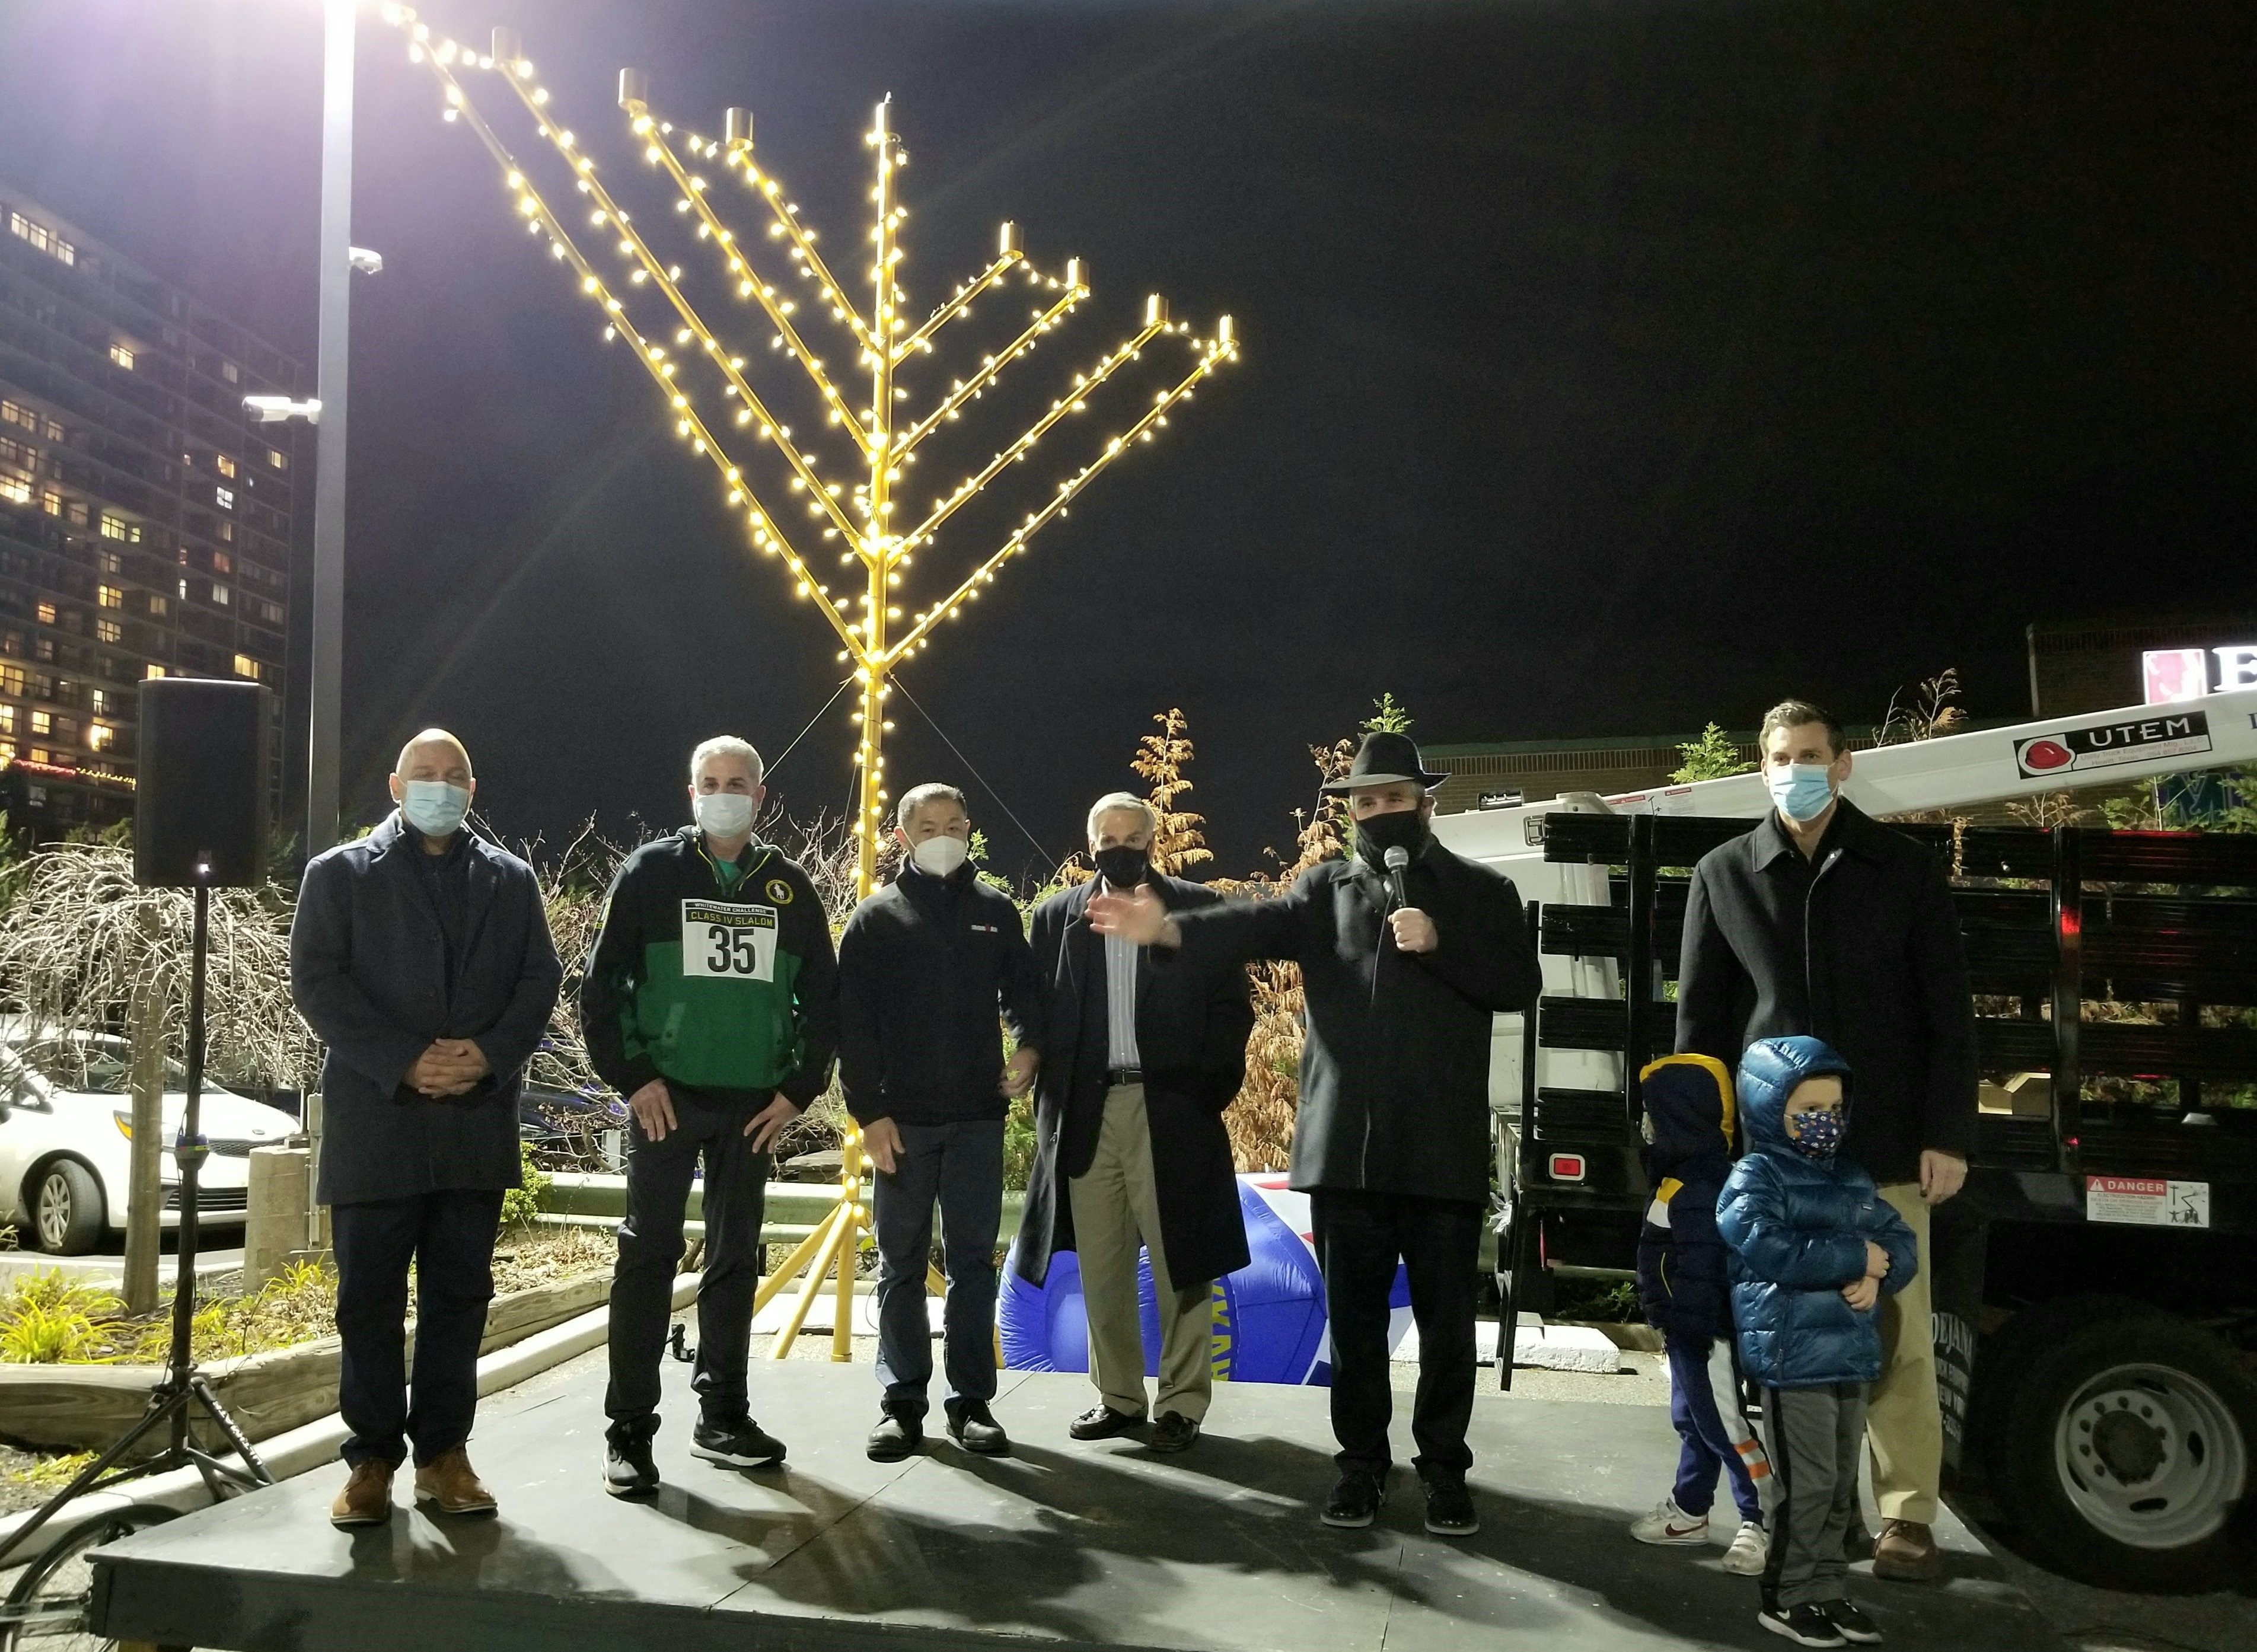 On December 13, 2020, Assemblyman Braunstein attended the Chabad of Northeast Queens Annual Menorah Lighting at the Bay Terrace Shopping Center.